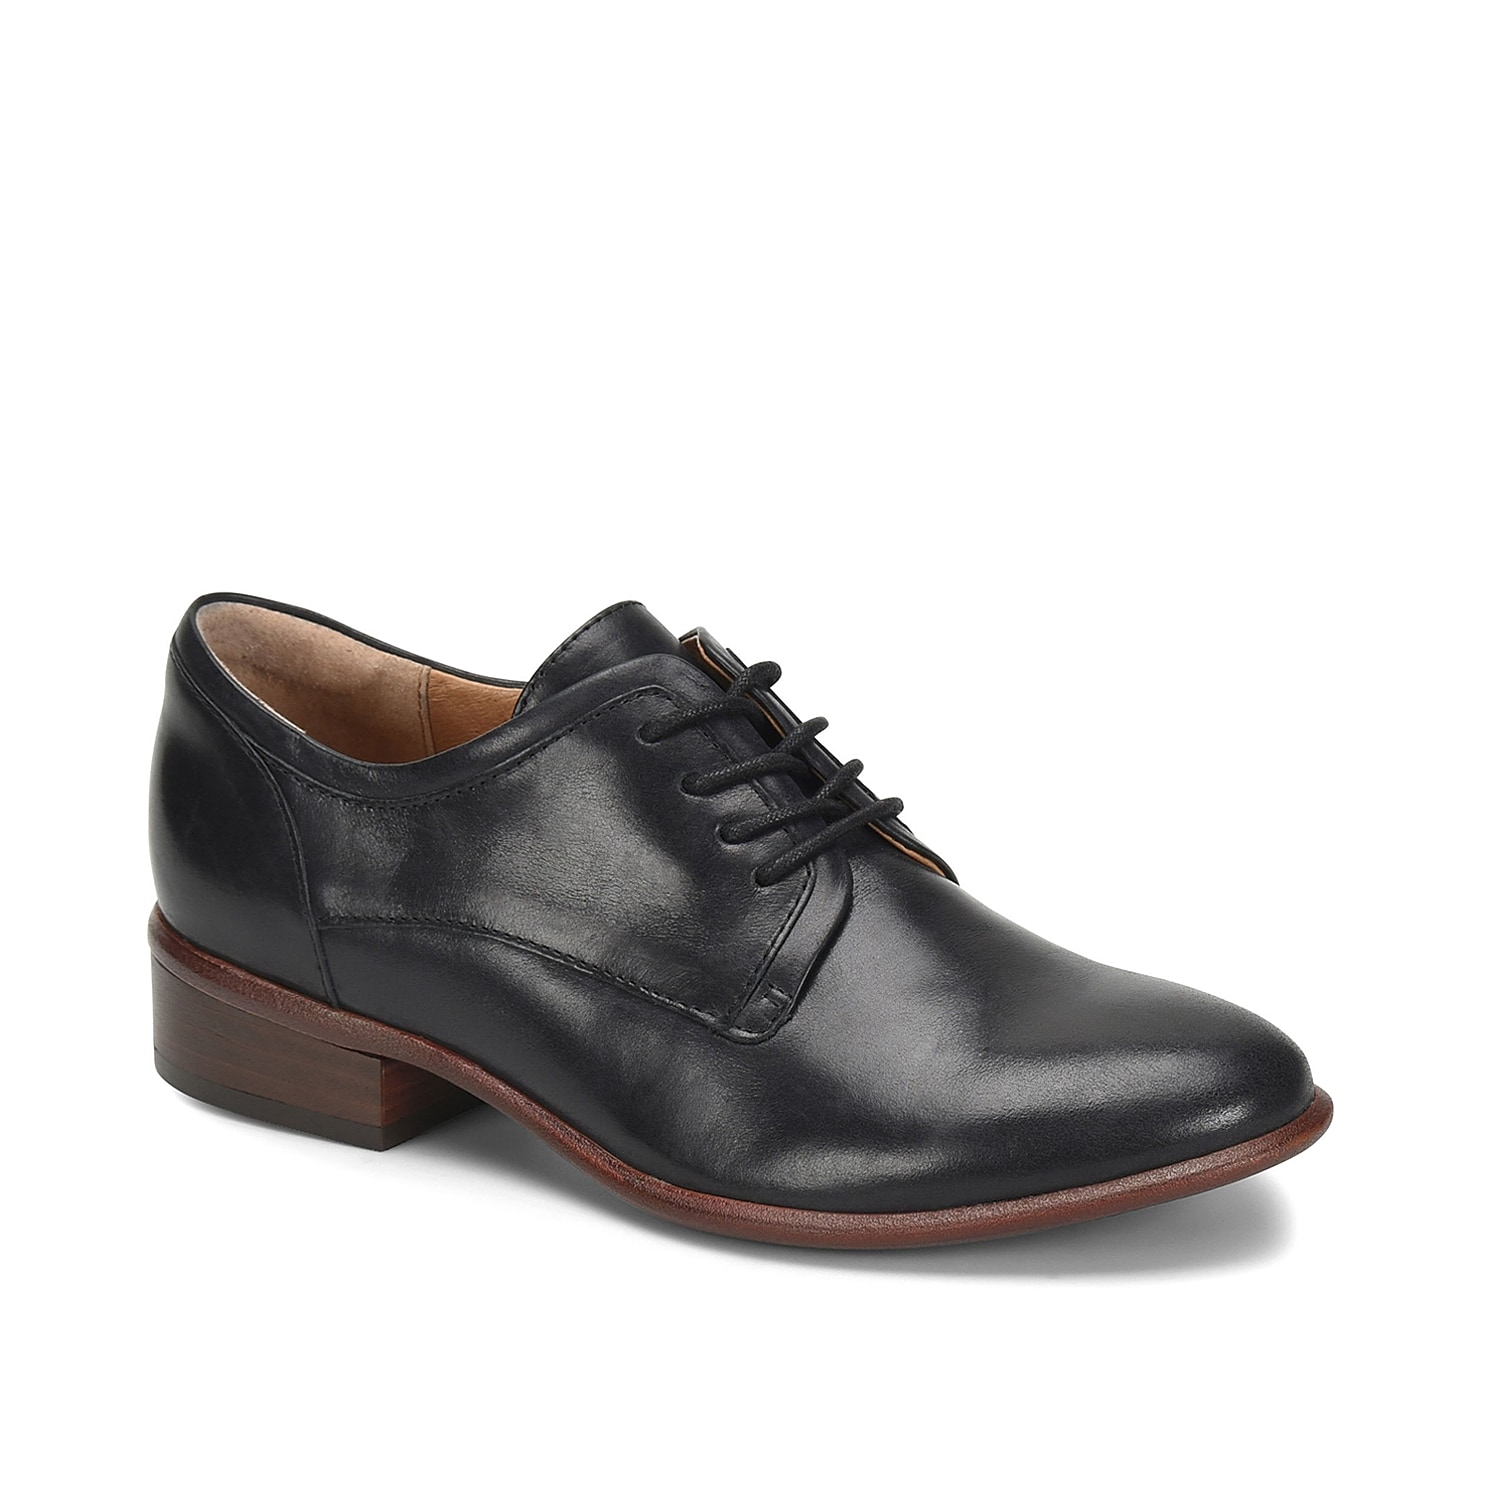 The Sweden oxford from Sofft provides a menswear-inspired vibe to any outfit. These leather lace-ups feature a cushioned ball and heel for extra arch support and a low block heel for a little lift.